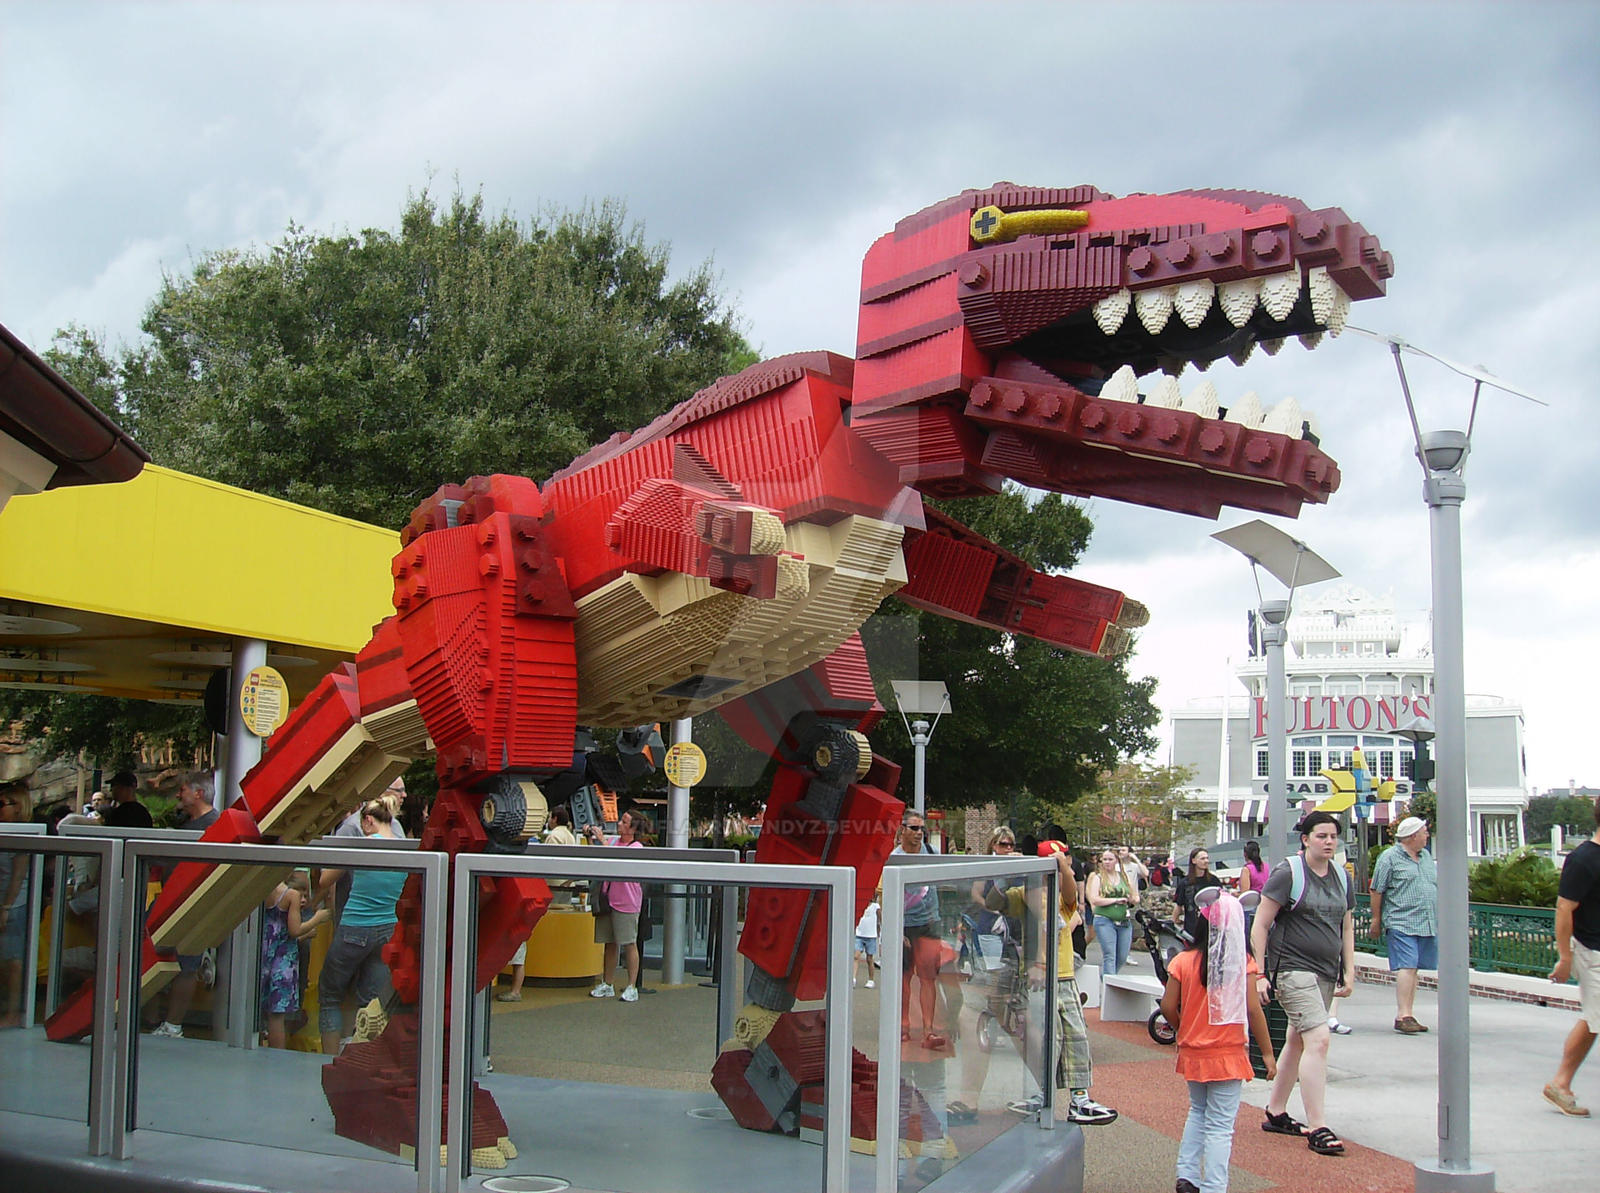 Lego Imagination World 3 TREX by AznFlavrdCandyz